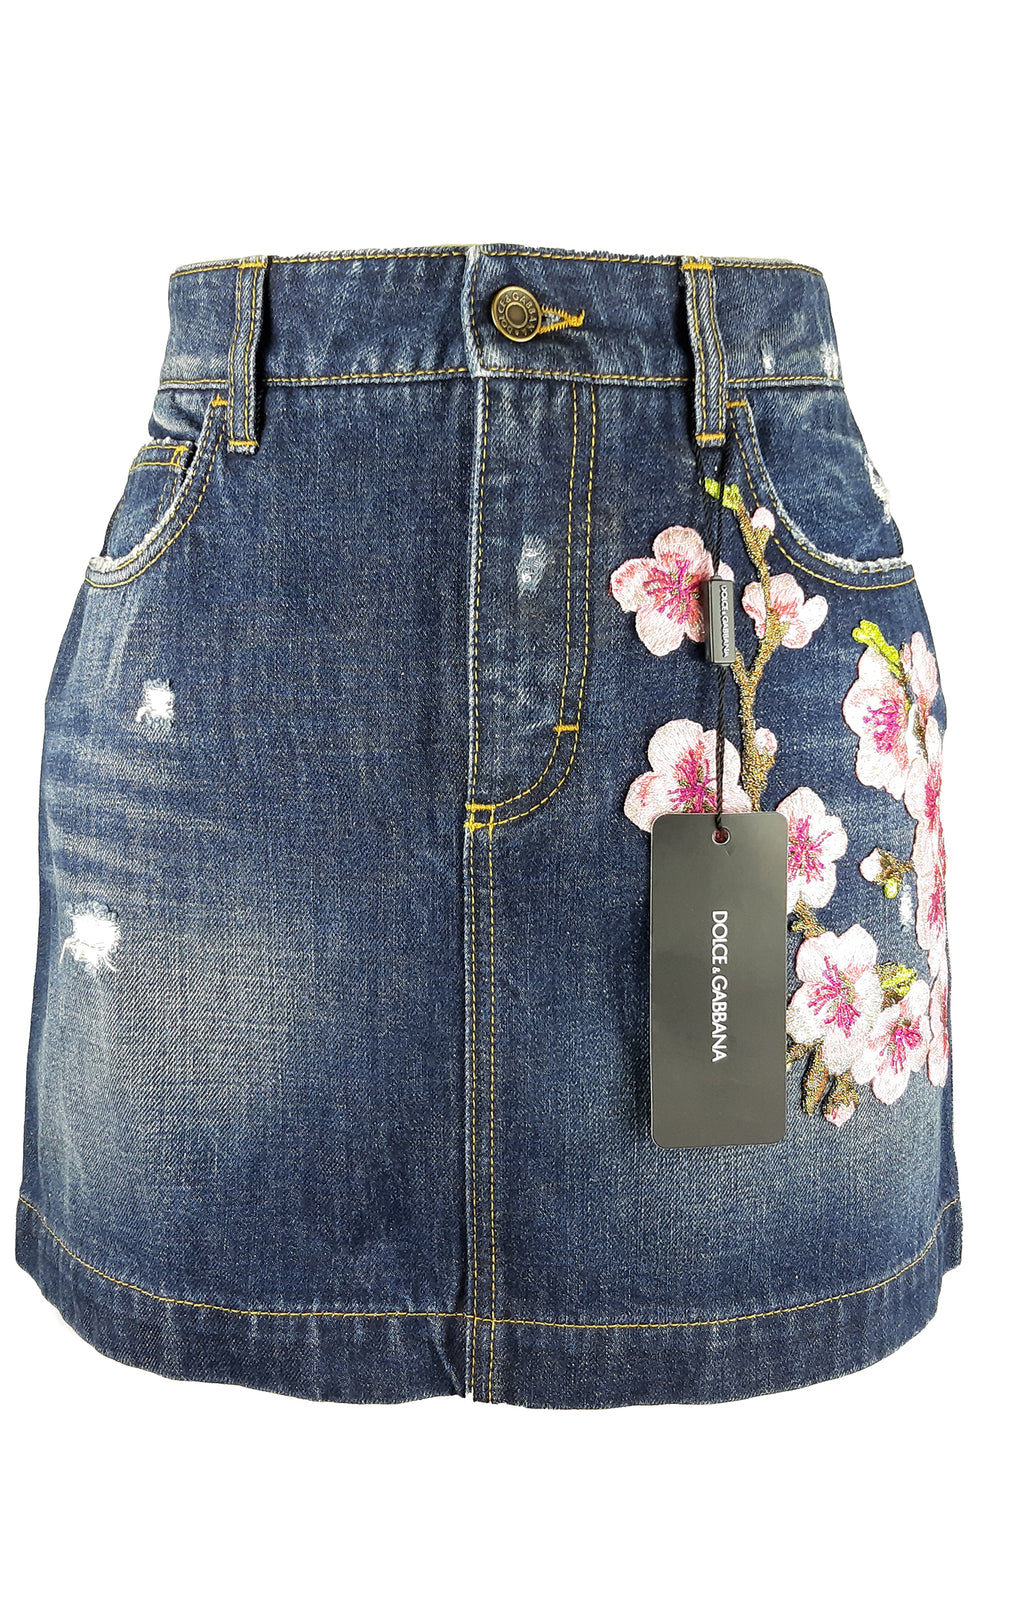 Dolce & Gabbana Denim Skirt with Pink Embroidered Flowers Size 40 (IT) 36 (EU)